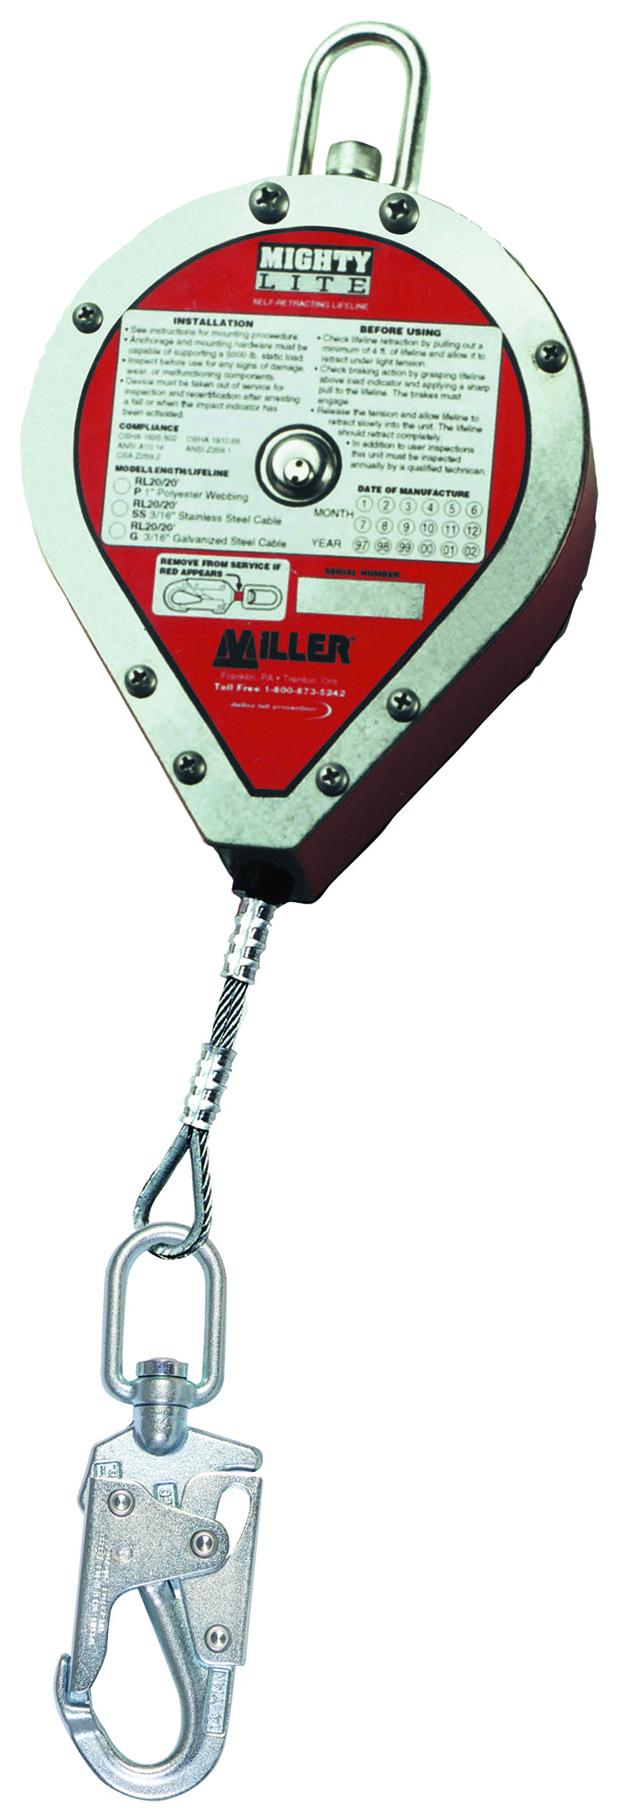 RL20G-Z7/20FT - Miller MightyLite™ Self-Retracting Lifelines-Self-Retracting Lifelines-SRL with 20 Ft. (6 m) - 0.1875